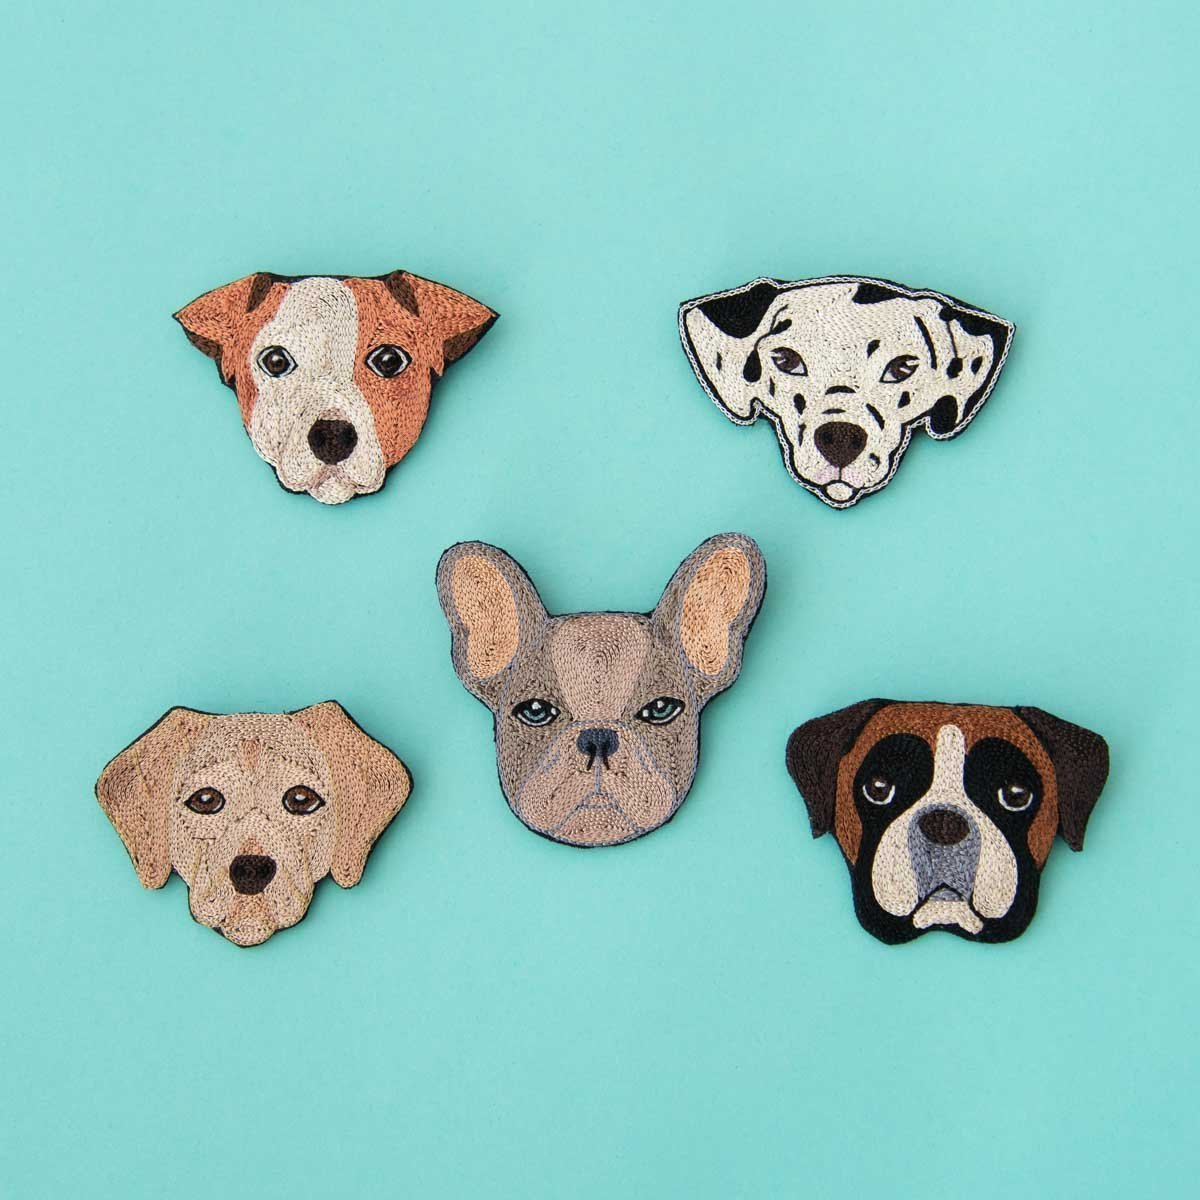 RO2077BR-ALL-DOGS-WHITE-BACKGROUND-3.jpg